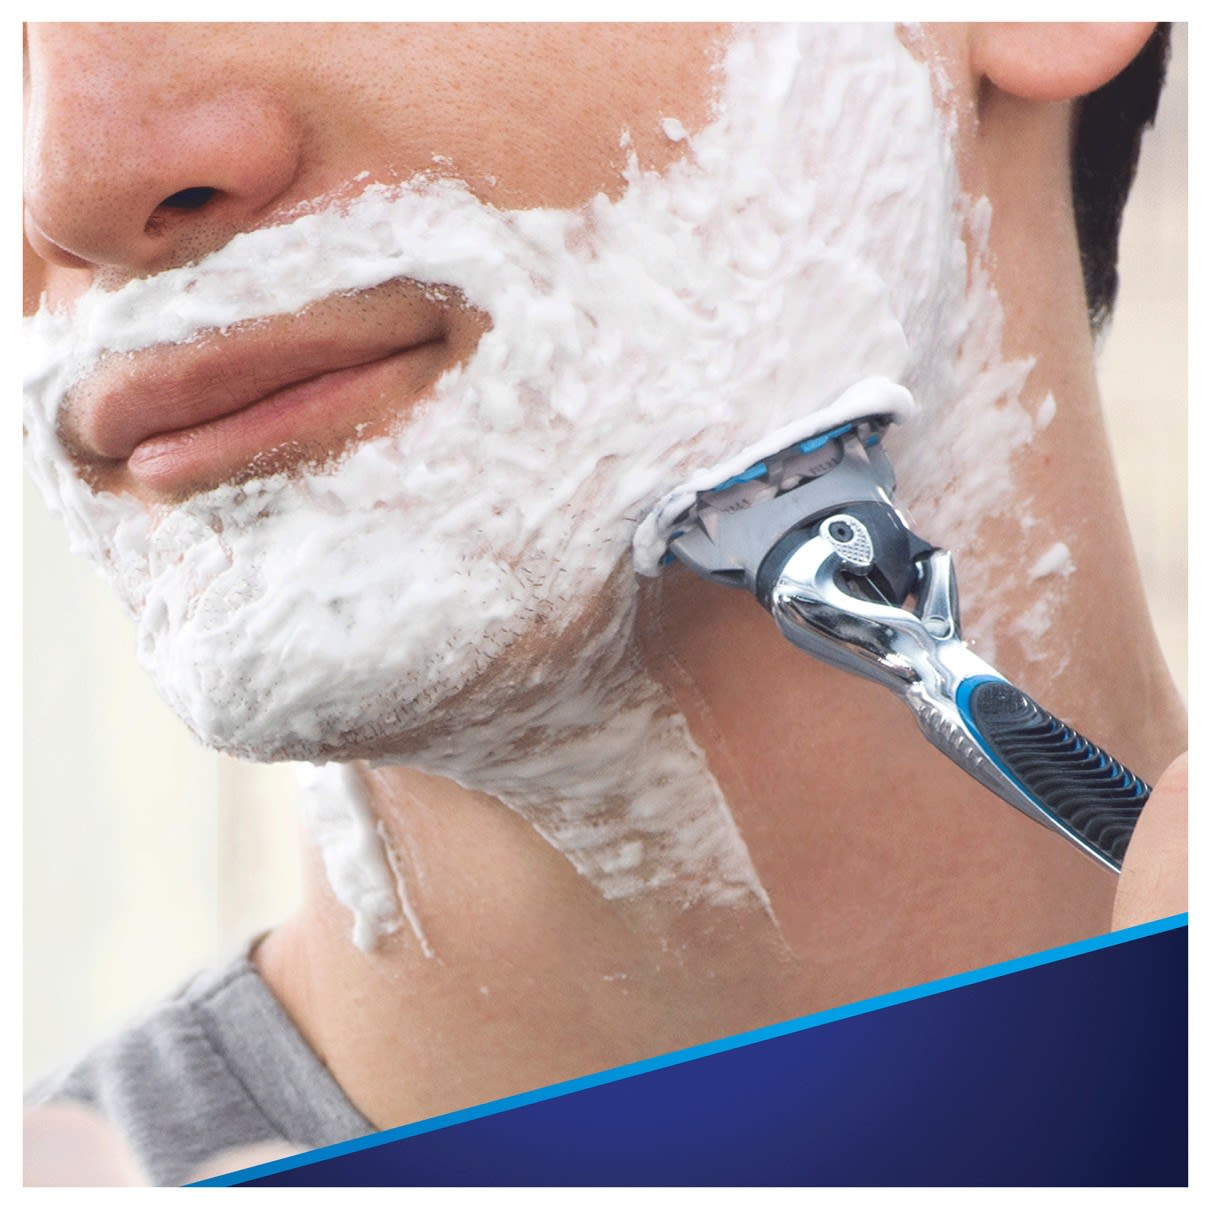 7. shields & cools while you shave